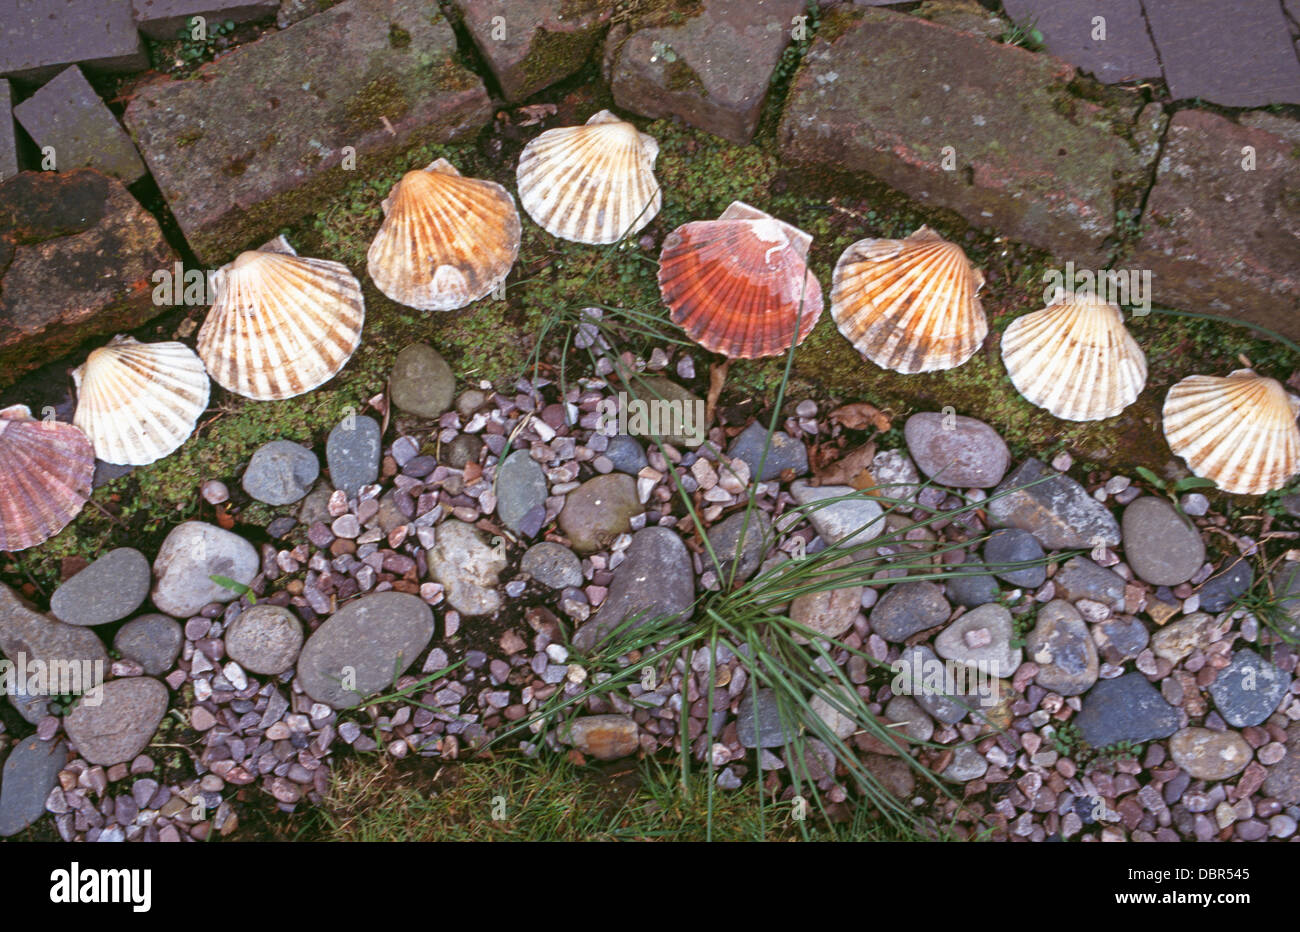 Garden Details With Close Up Of Edging With Seashells And Pebbles